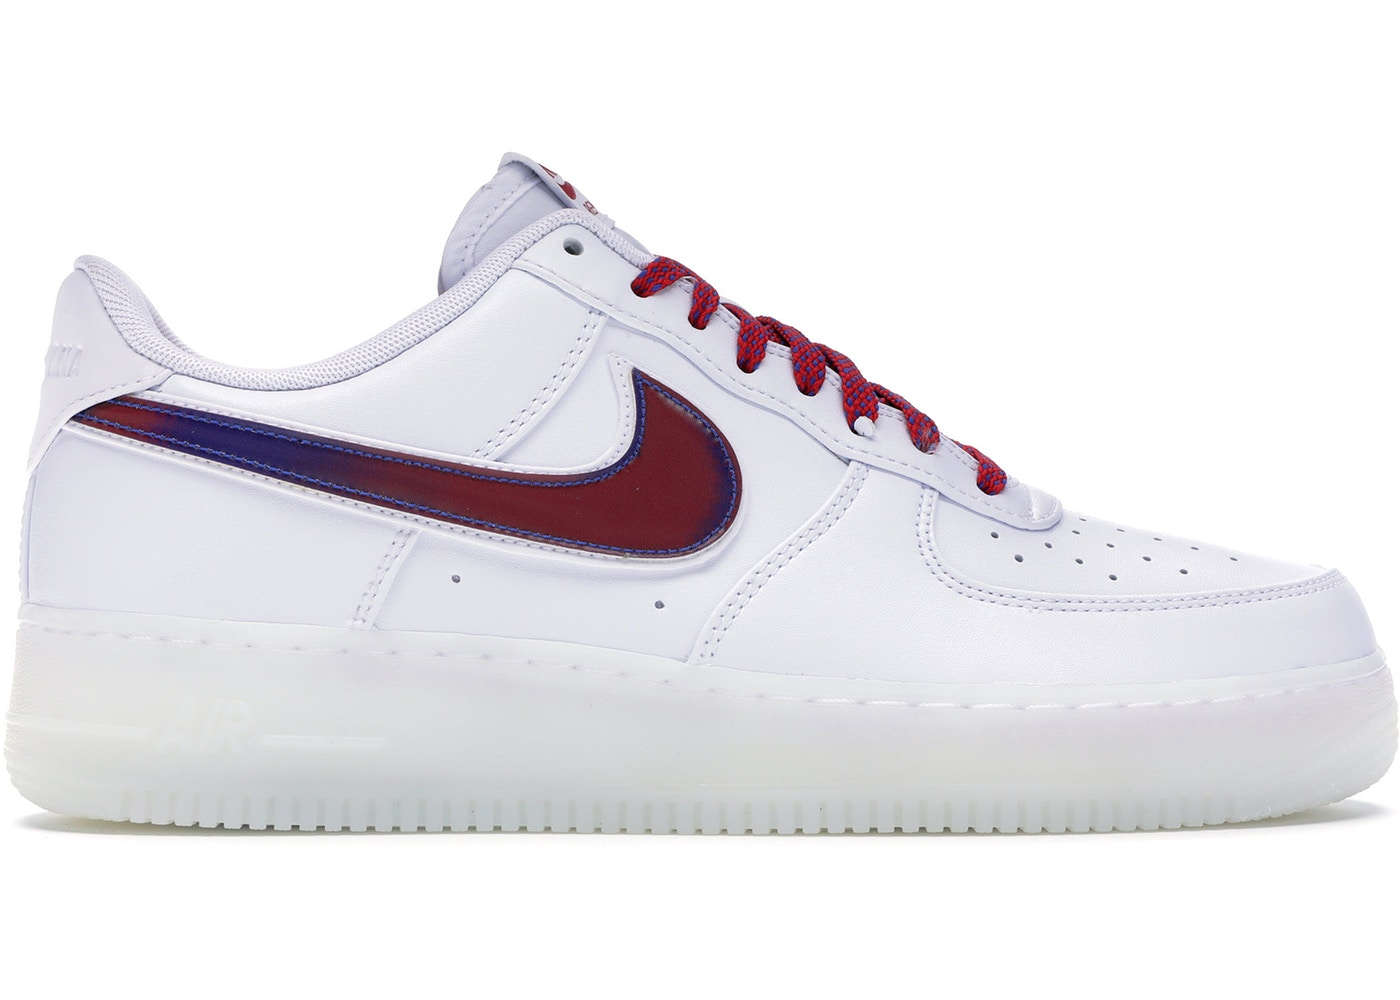 chaussures de sport b96b0 528d7 Air Force 1 Low De Lo Mio